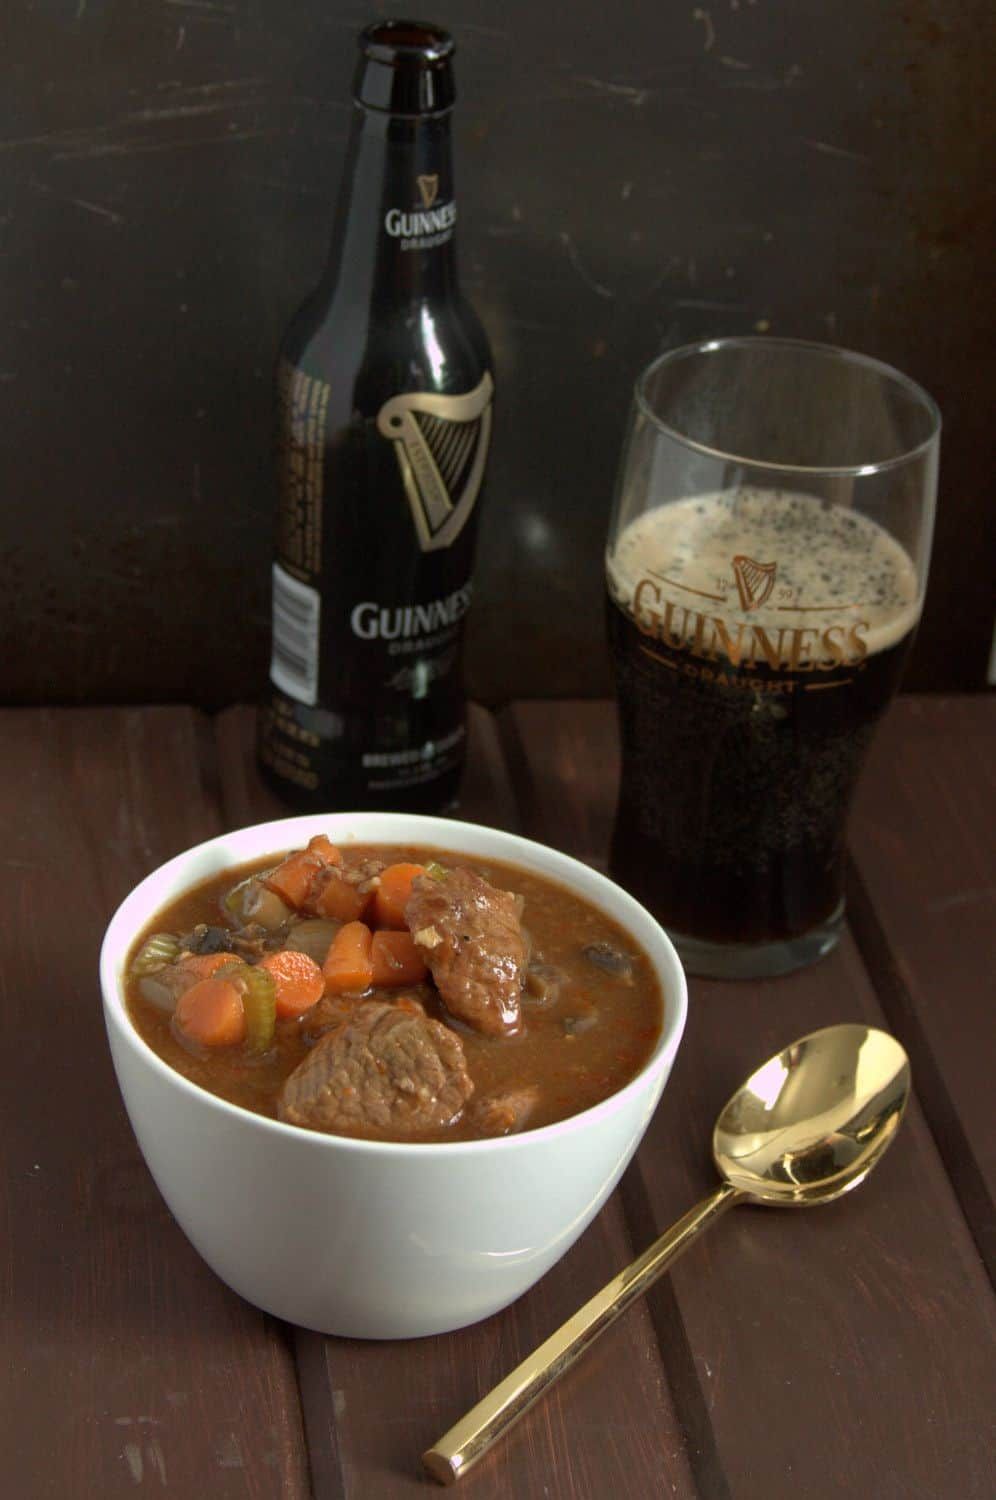 Loaded with vegetables, lean protein, and tons of flavor, this Guiness Beef Stew is a healthier way to celebrate St. Patrick's Day! Recipe on GoodieGodmother.com